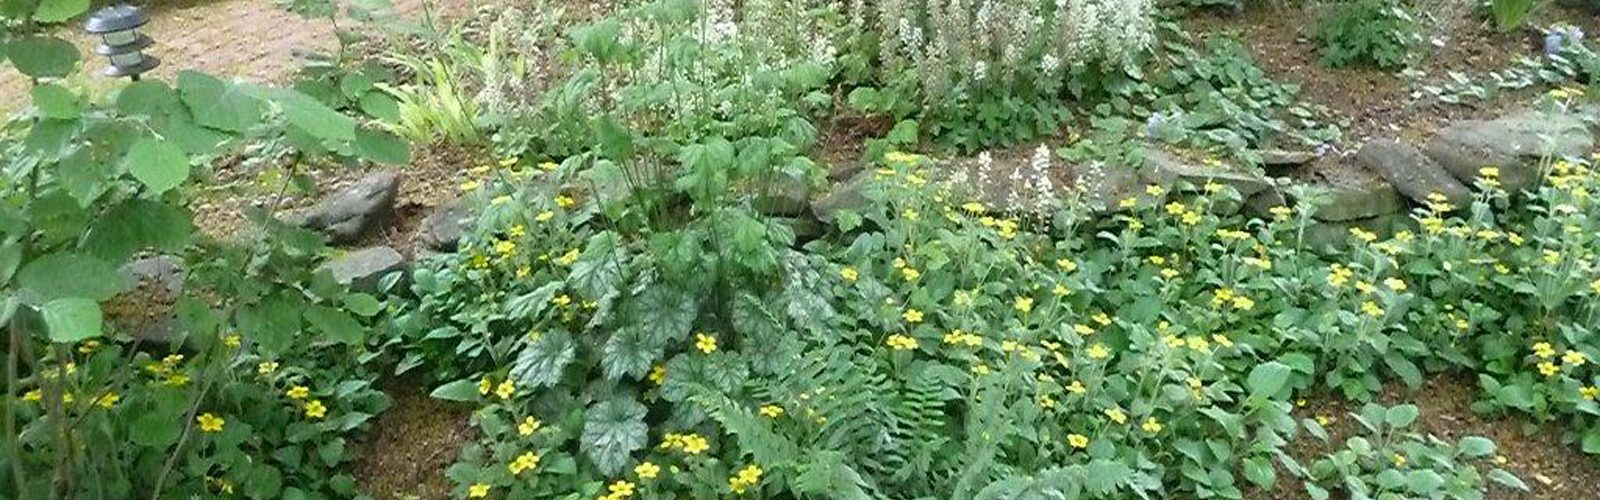 Living Mulch Part 3: Using Wood Mulch in the Landscape